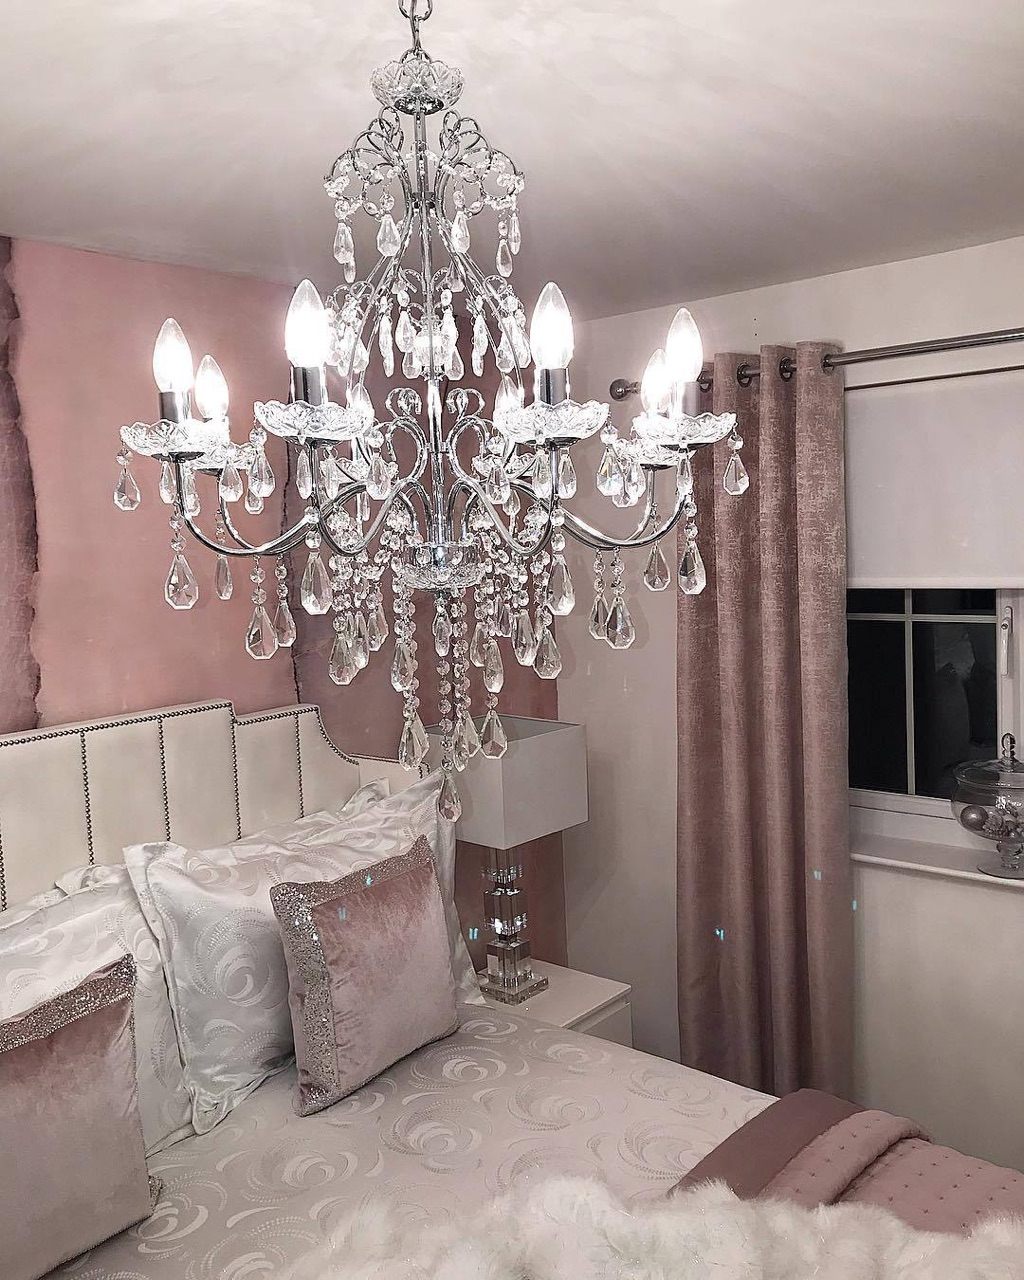 chandeliers, rose gold decor, home and decor